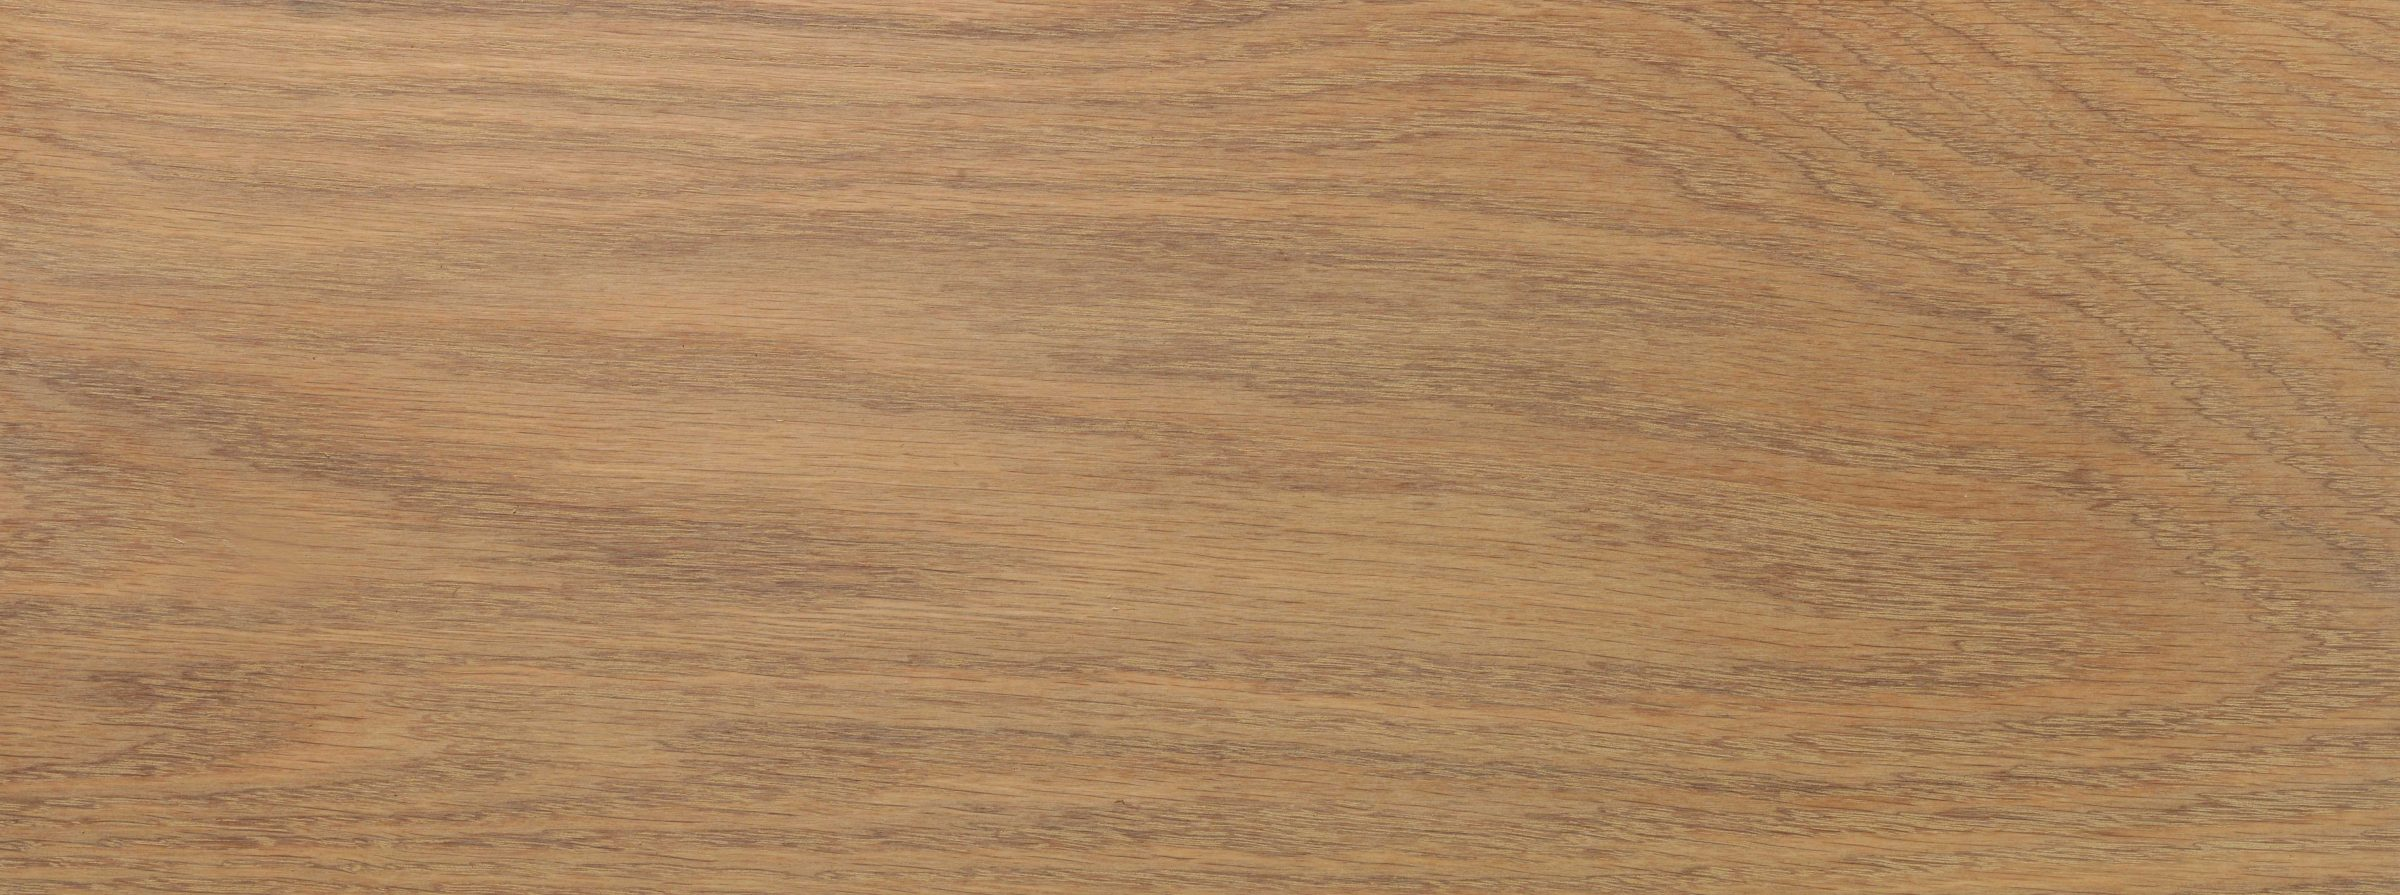 Oak 20mm engineered board, Sawn, 1sqm pack